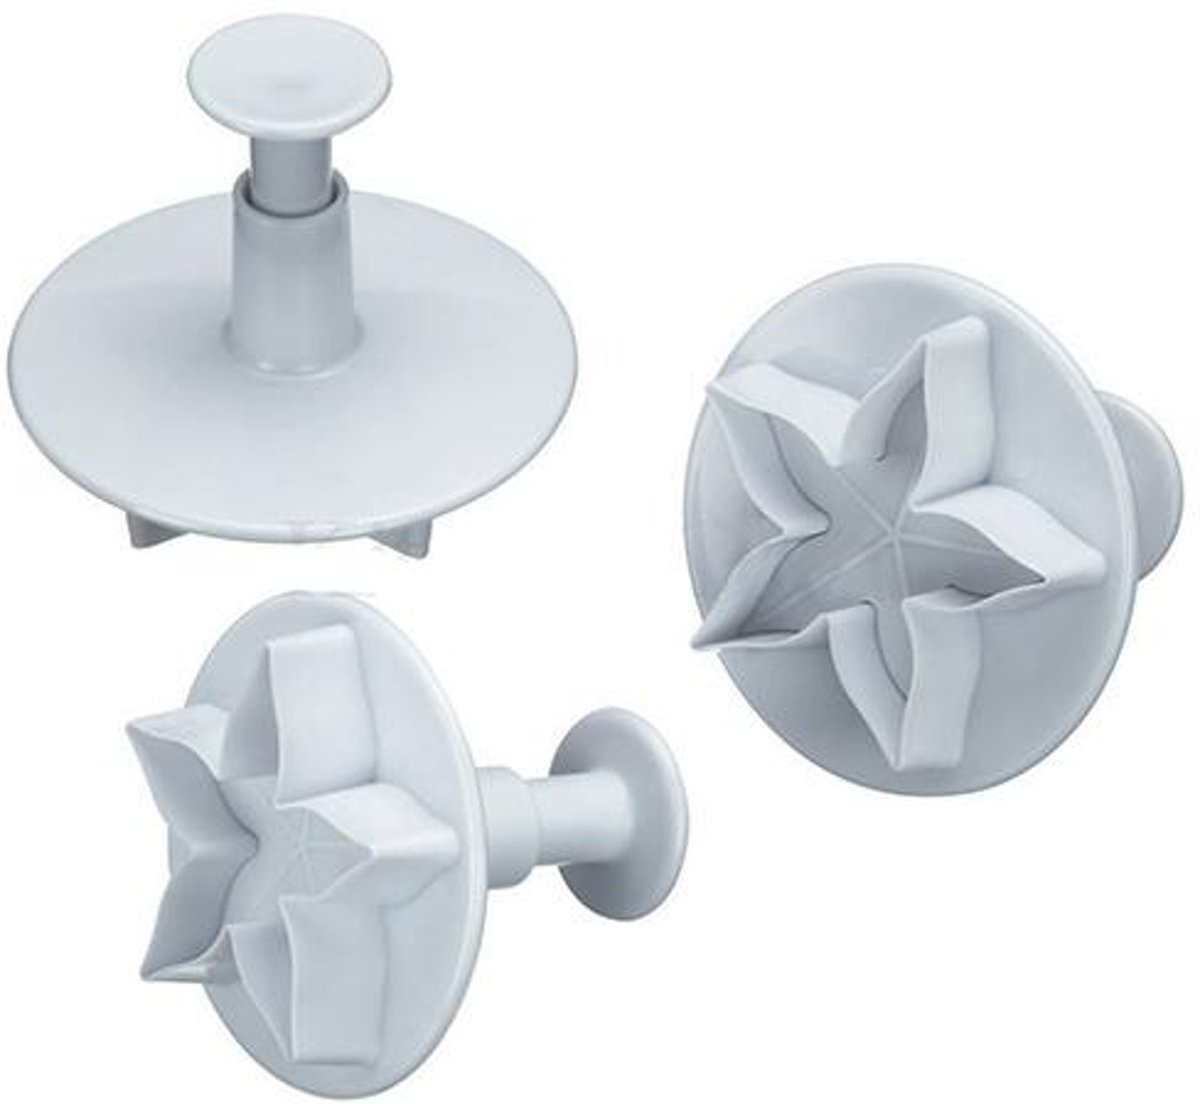 KitchenCraft Set van 3 plunger cutters - lotus / bloemen - Sweetly Does It | Kitchen Craft kopen